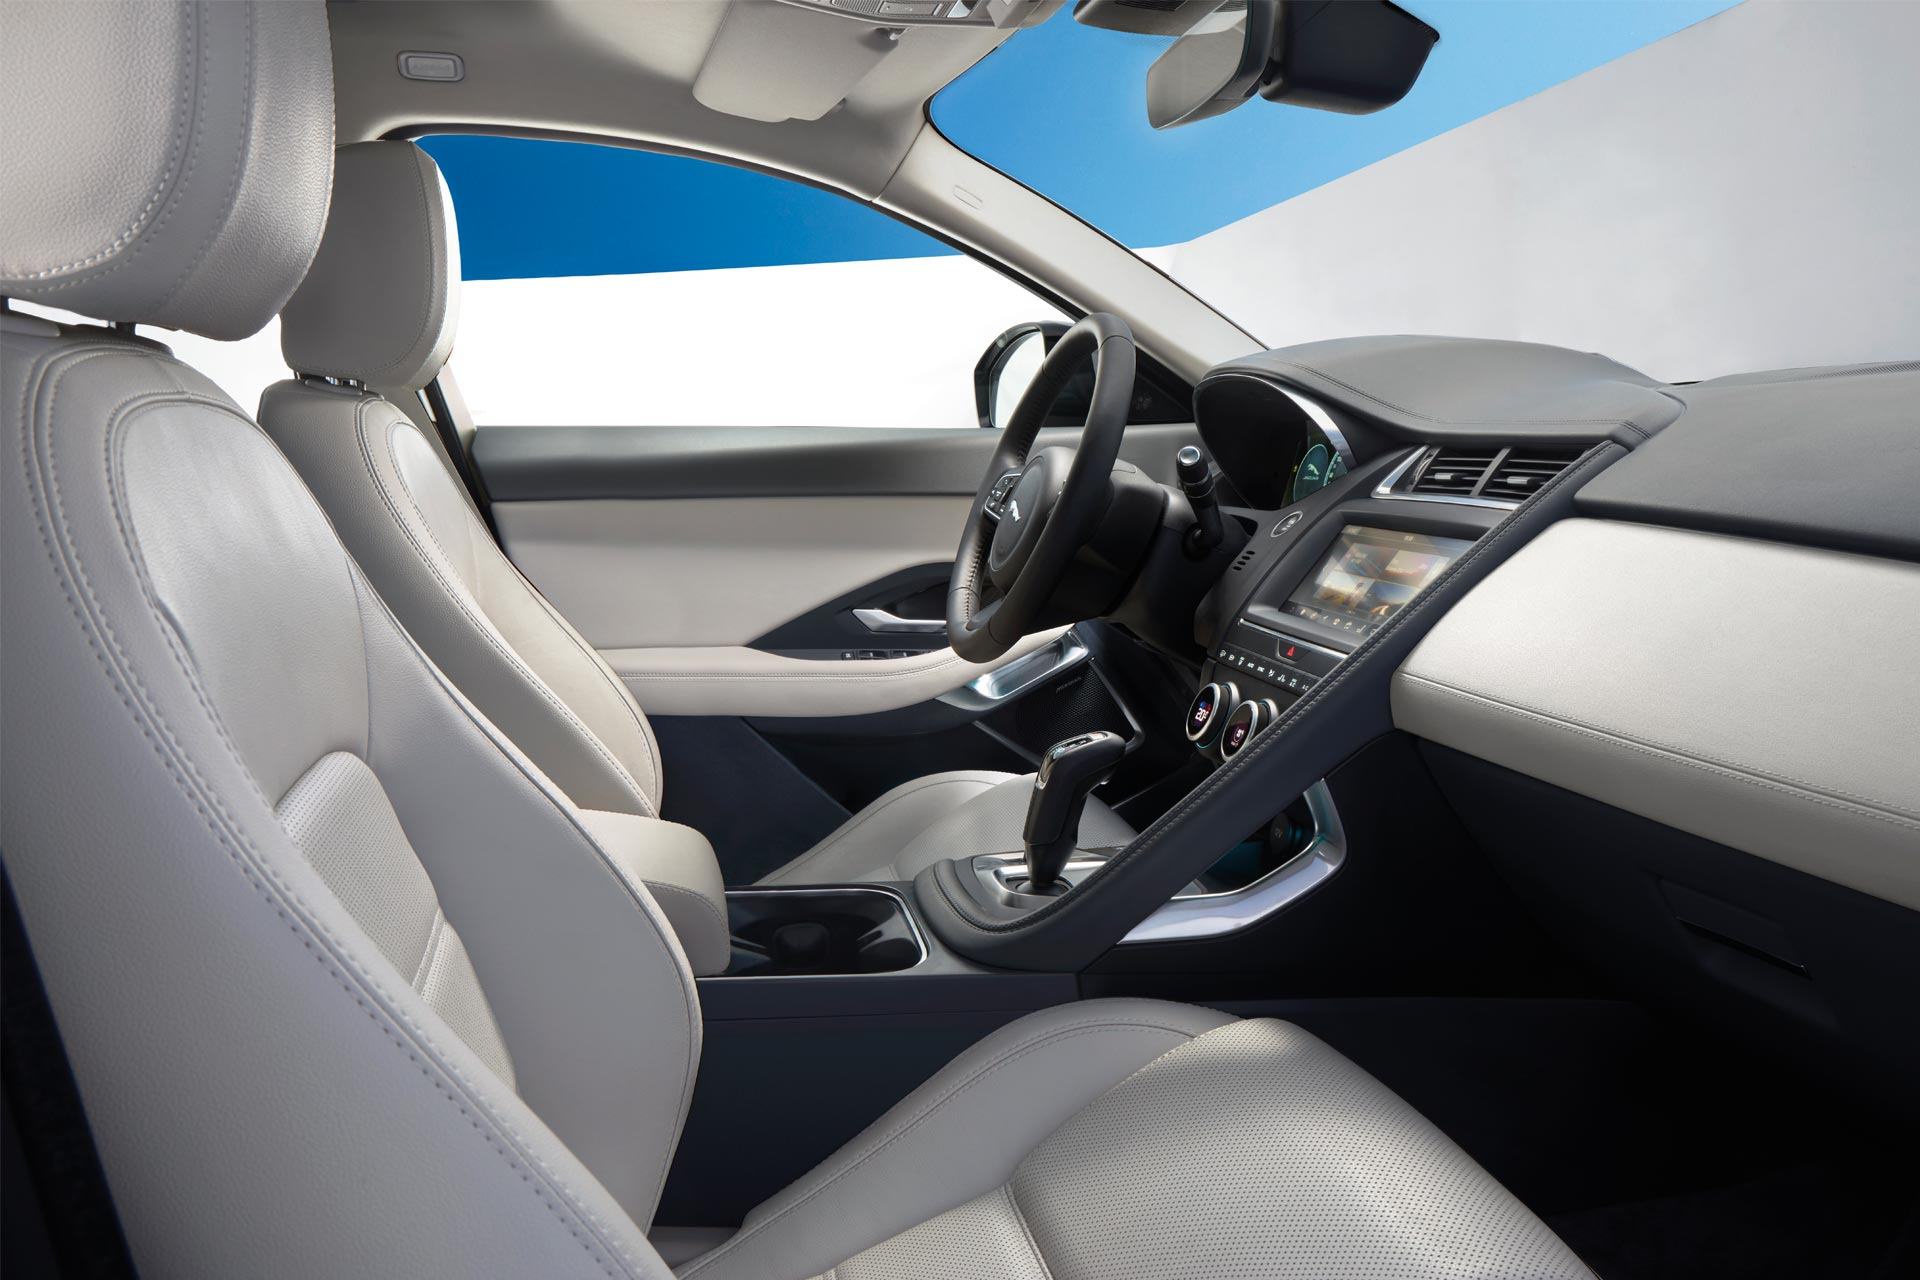 Jaguar-E-Pace-interior_4